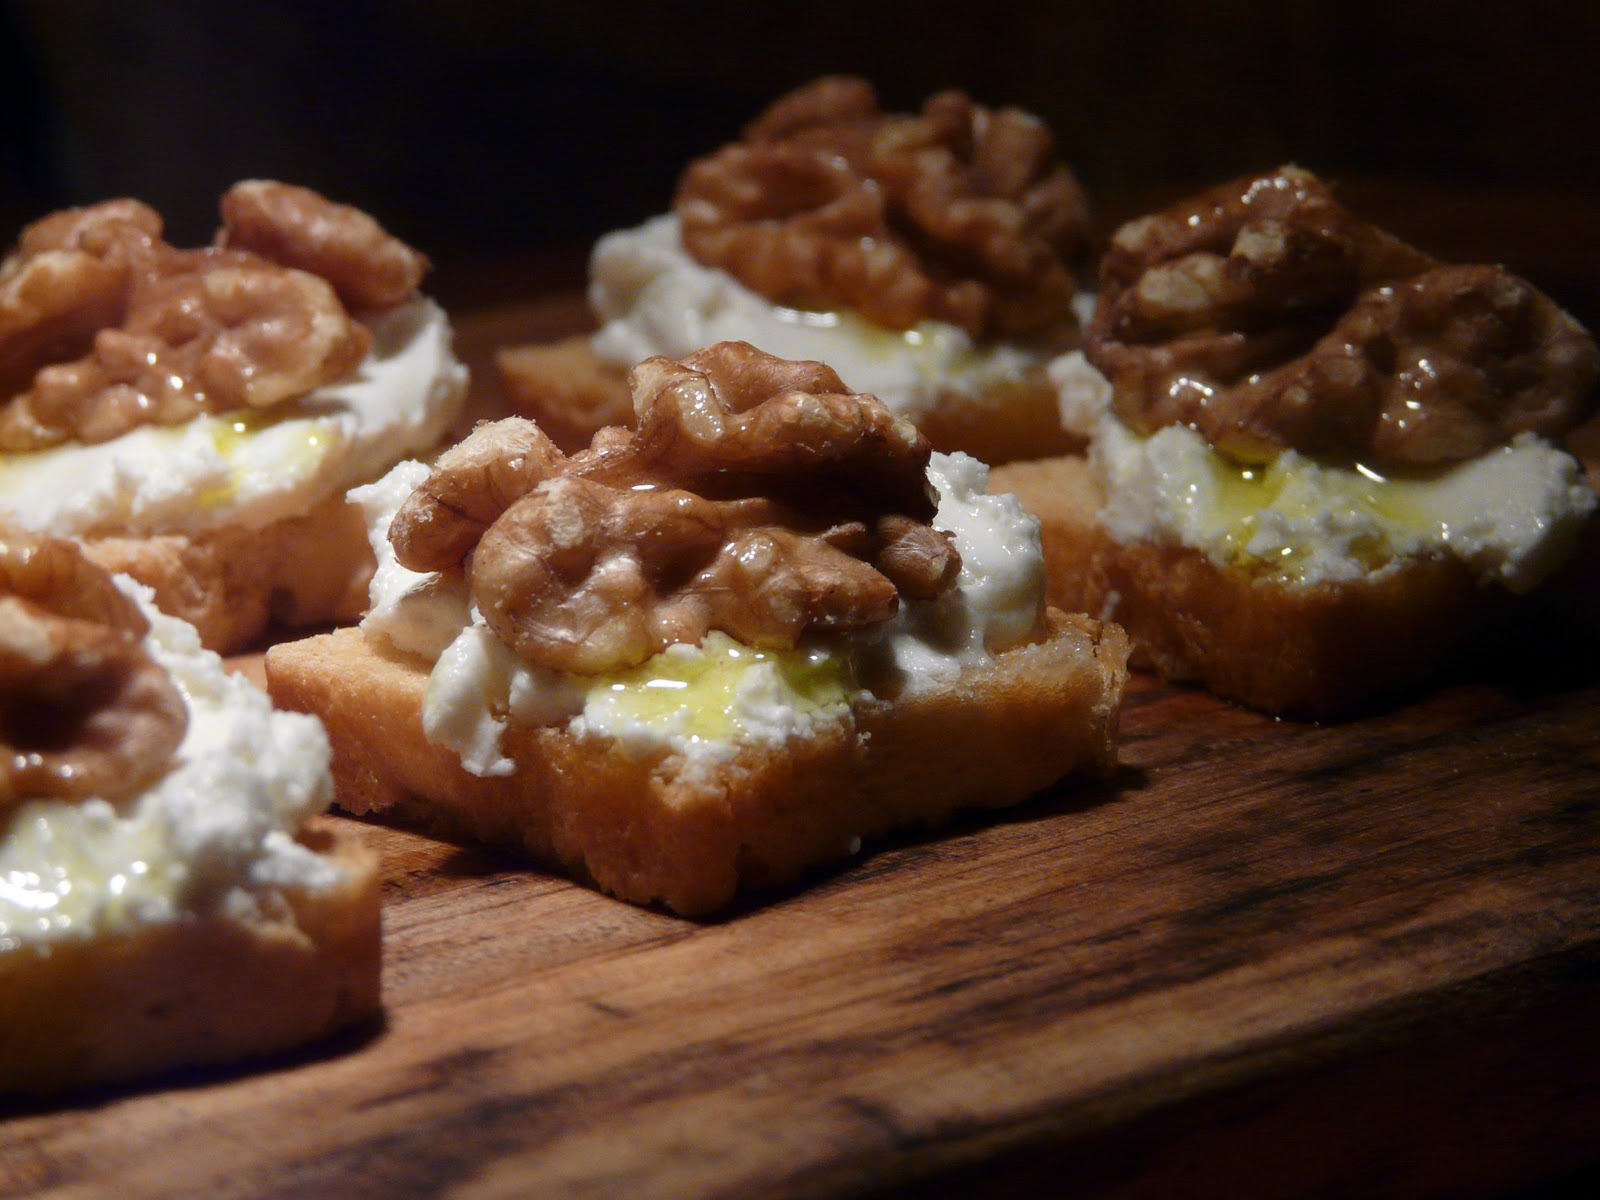 For a quick appetizer we had little cocktail toasts topped with warm ...